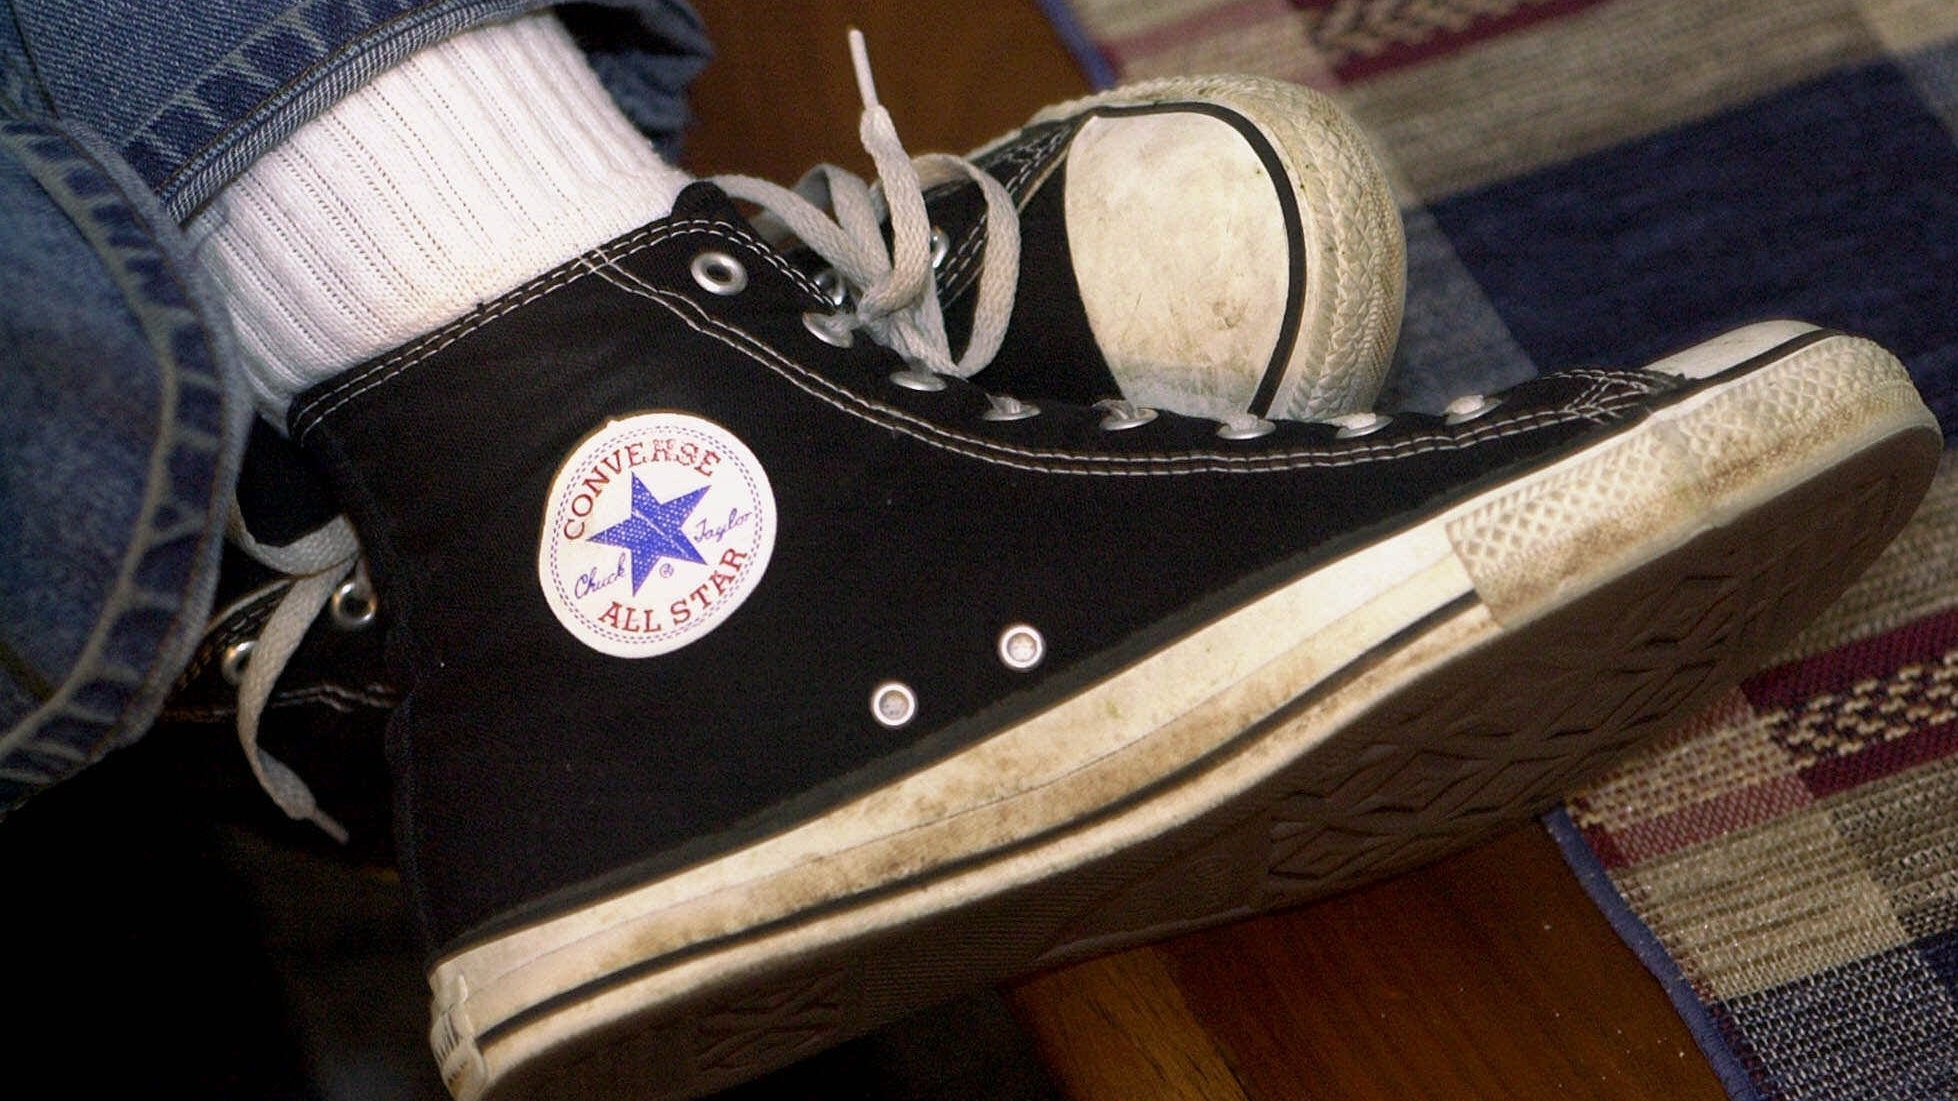 Old converse sneakers | Traveled all the way around the worl